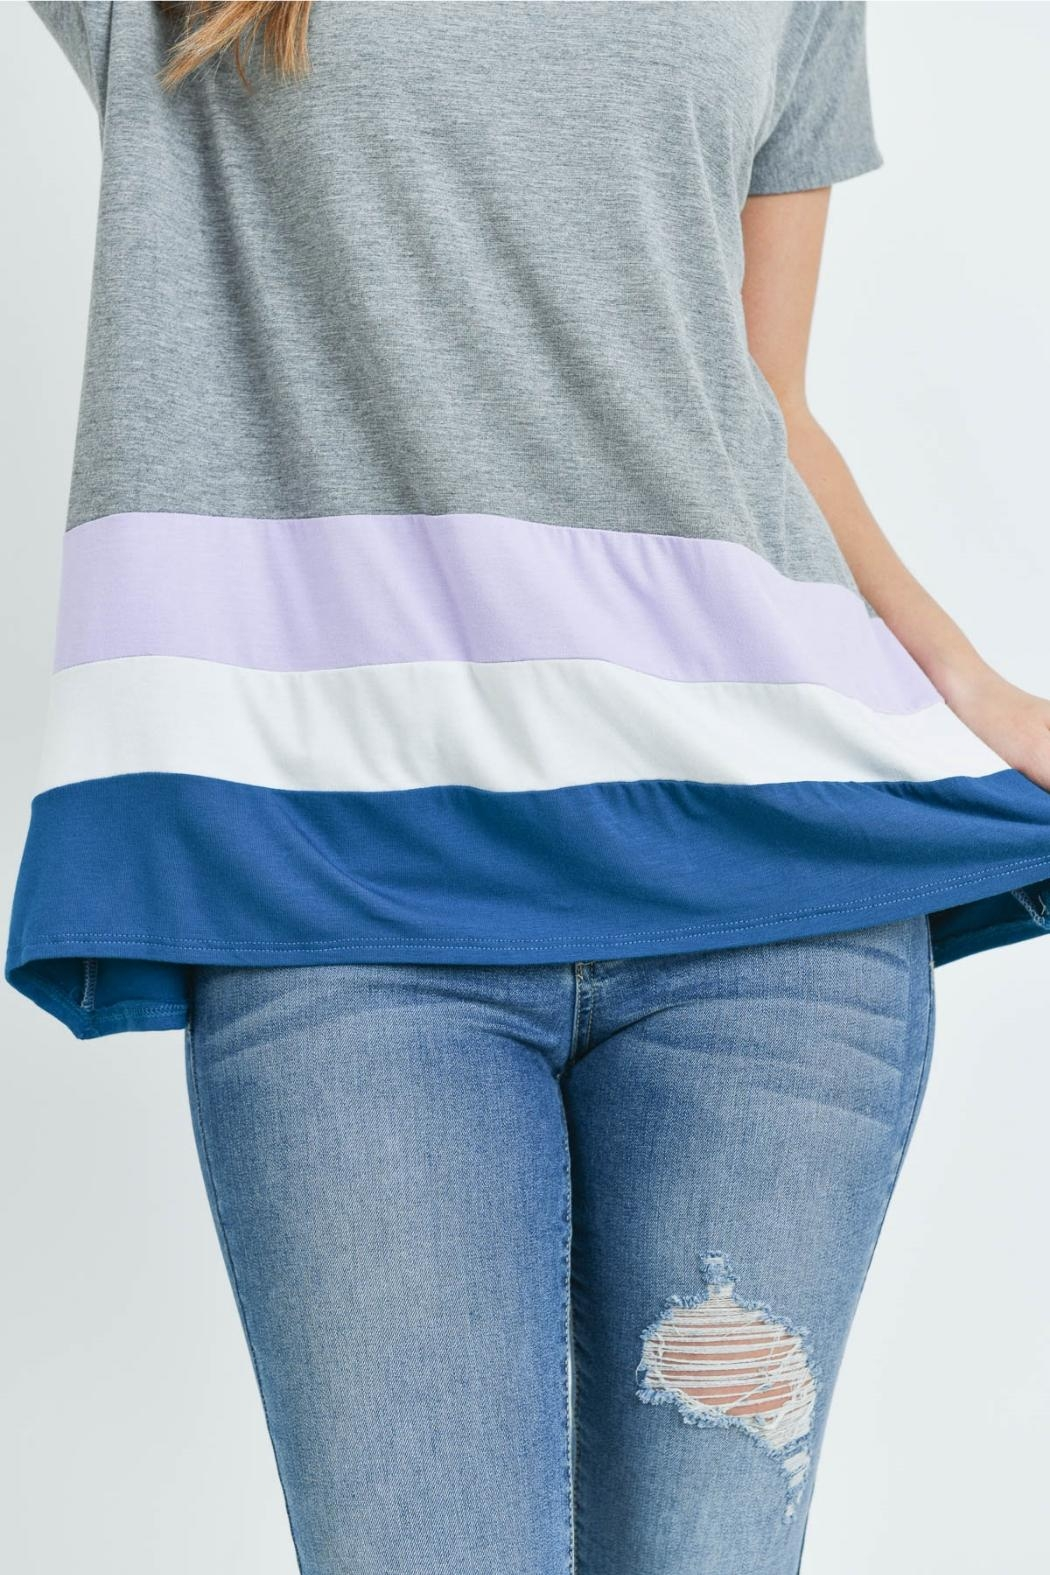 Unbranded Gray Bamboo Top - Side Cropped Image